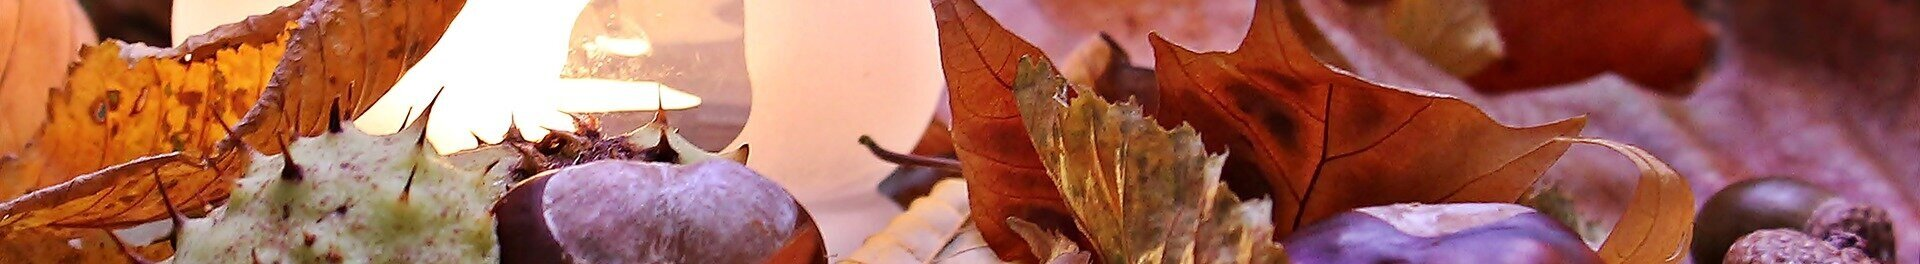 autumn-mood-1716257_1920.jpg